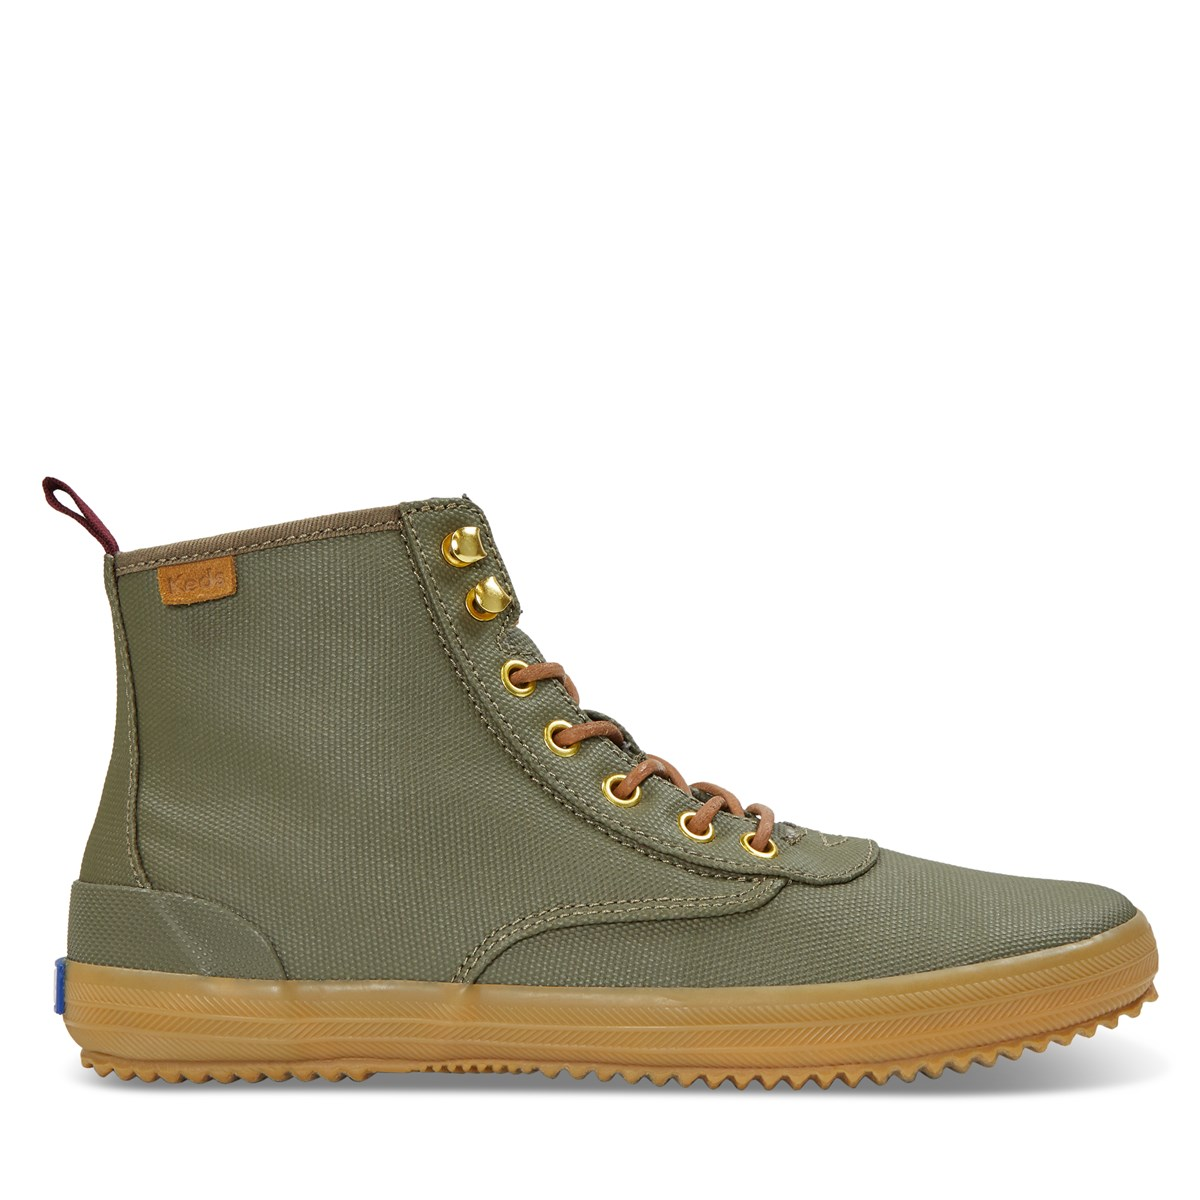 Women's Scout Splash Canvas Boots in Khaki